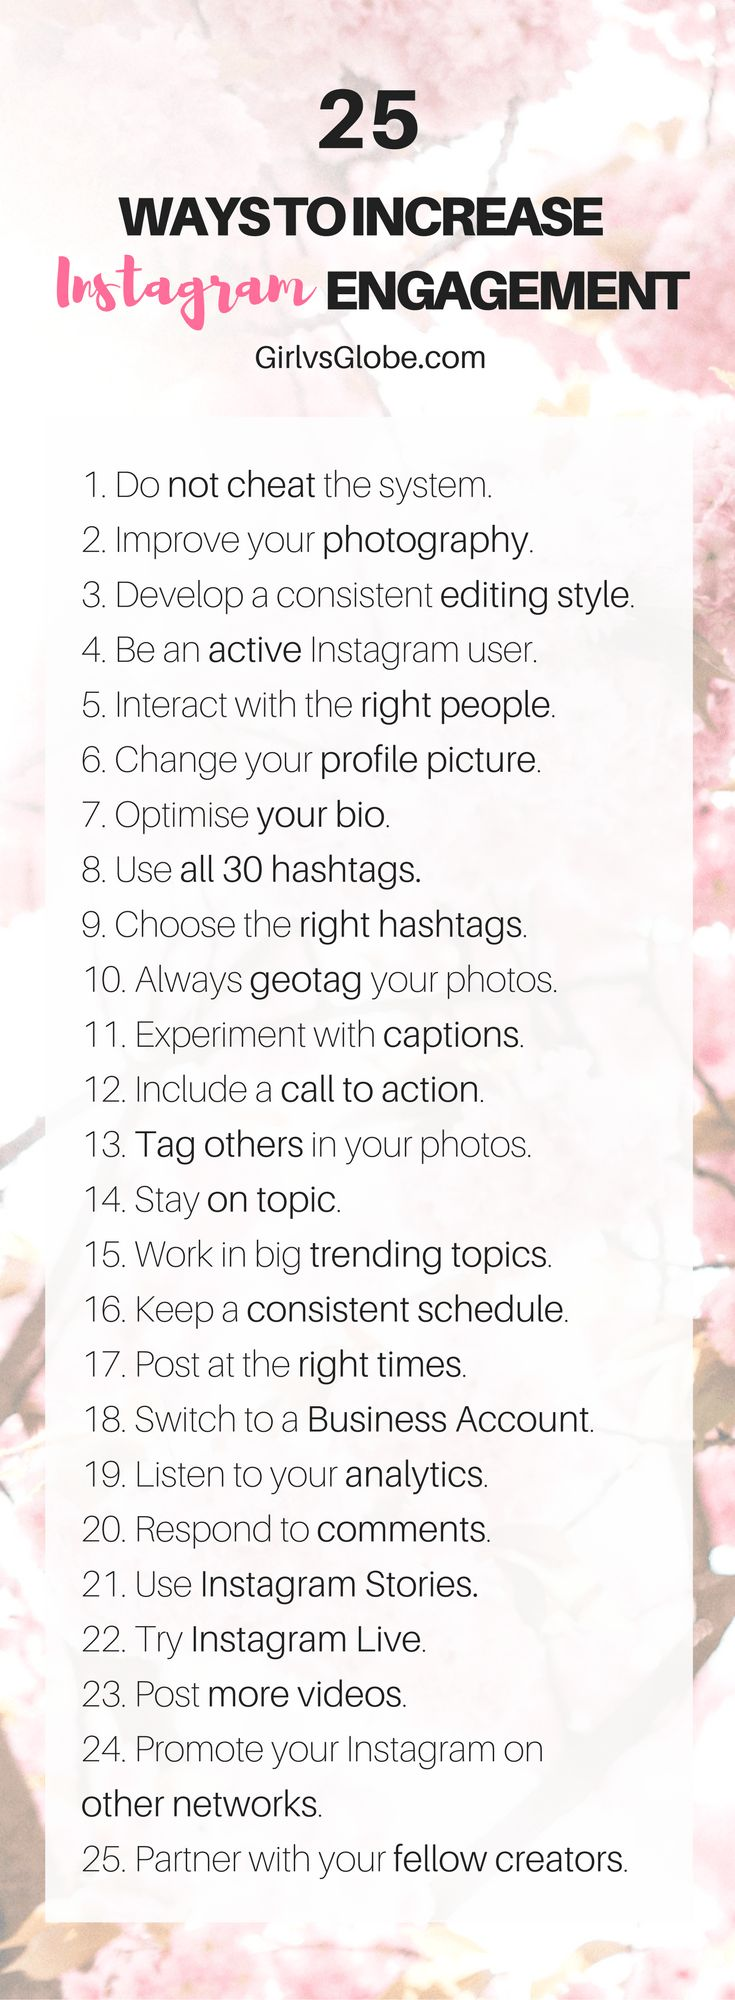 If you're looking to get more comments and get more likes on Instagram, this is the perfect starting point. These 25 tips will help you beat the algorithm and increase Instagram engagement in no time! How do I know that? Because I was able to increase my engagement rate using these exact tips at a time when most people's are quickly nosediving. My number of average likes received grew by 29.3% over the course of last month! None of the tips I'm about to share require you to pay for any…